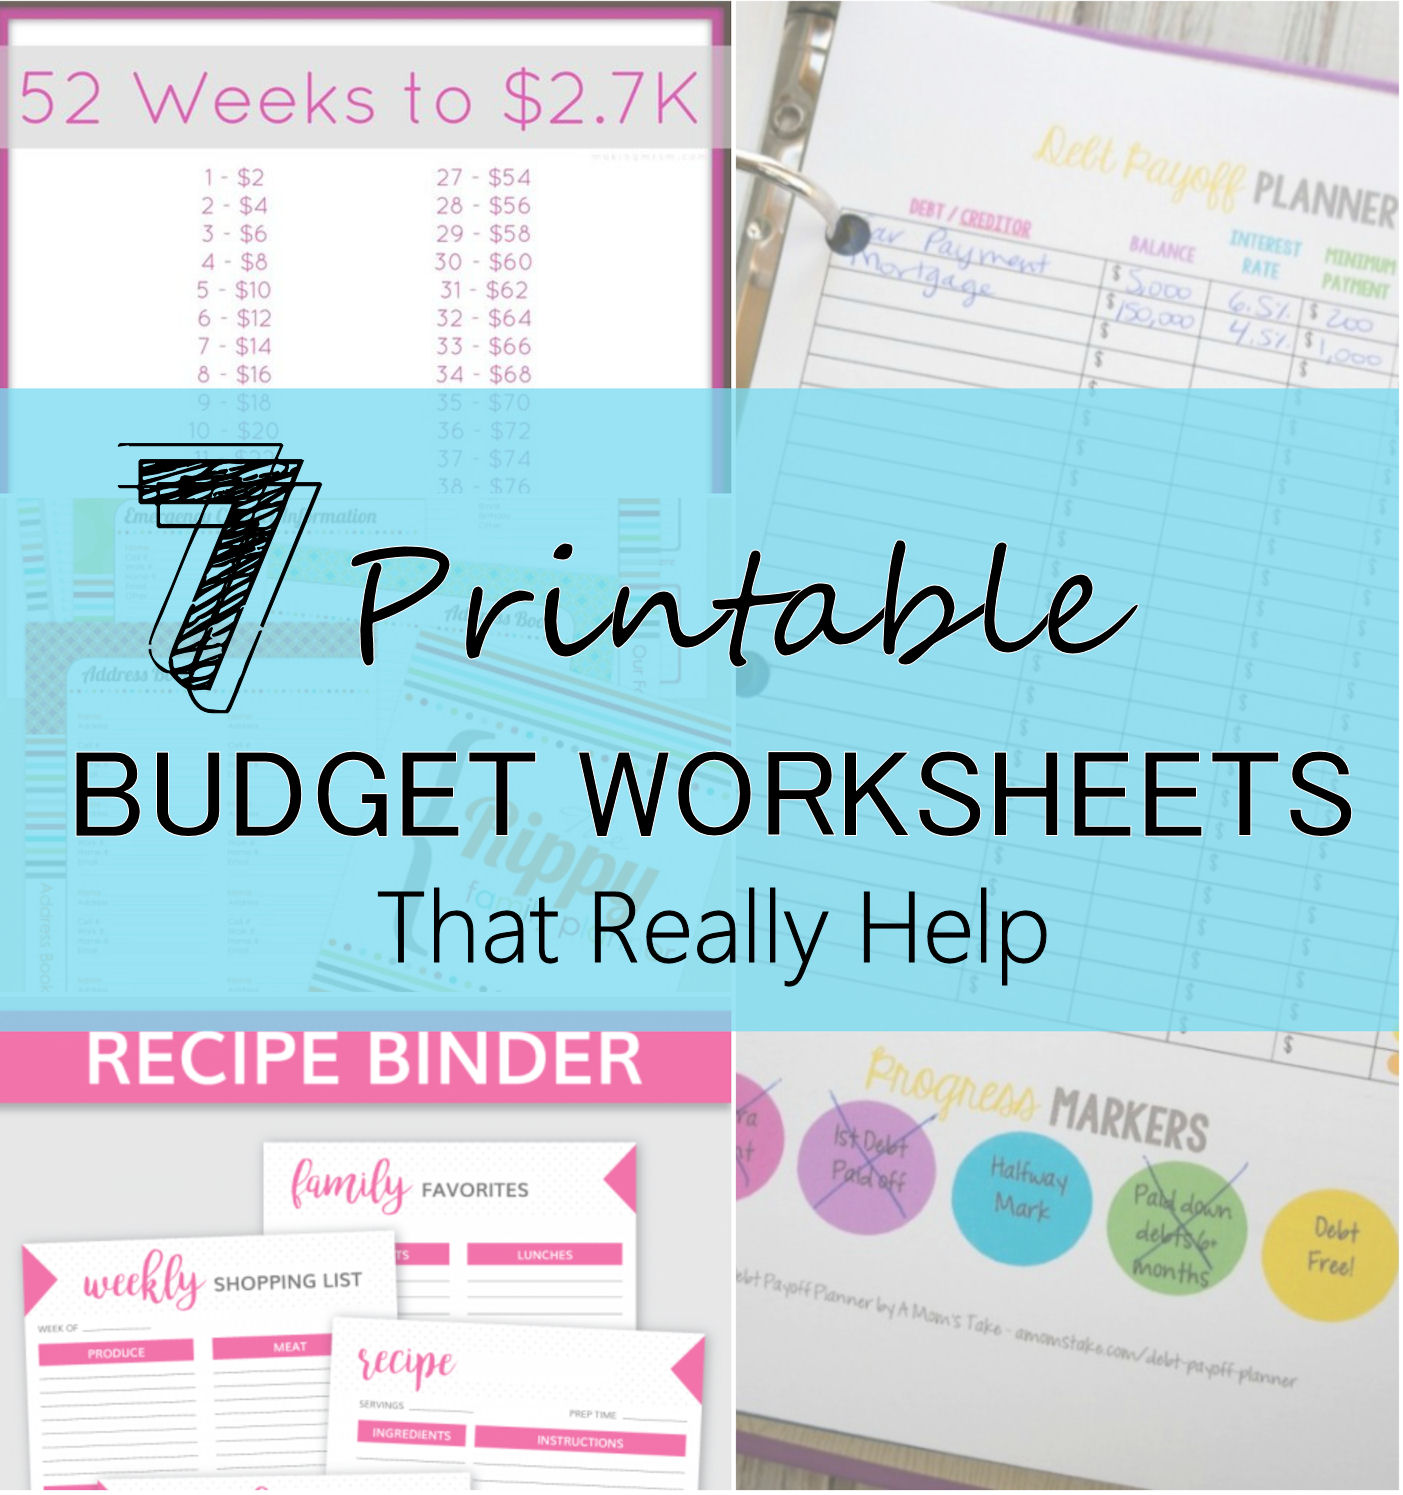 Worksheets Budgeting Worksheets 7 printable budget worksheets that really help six feet under blog worksheets